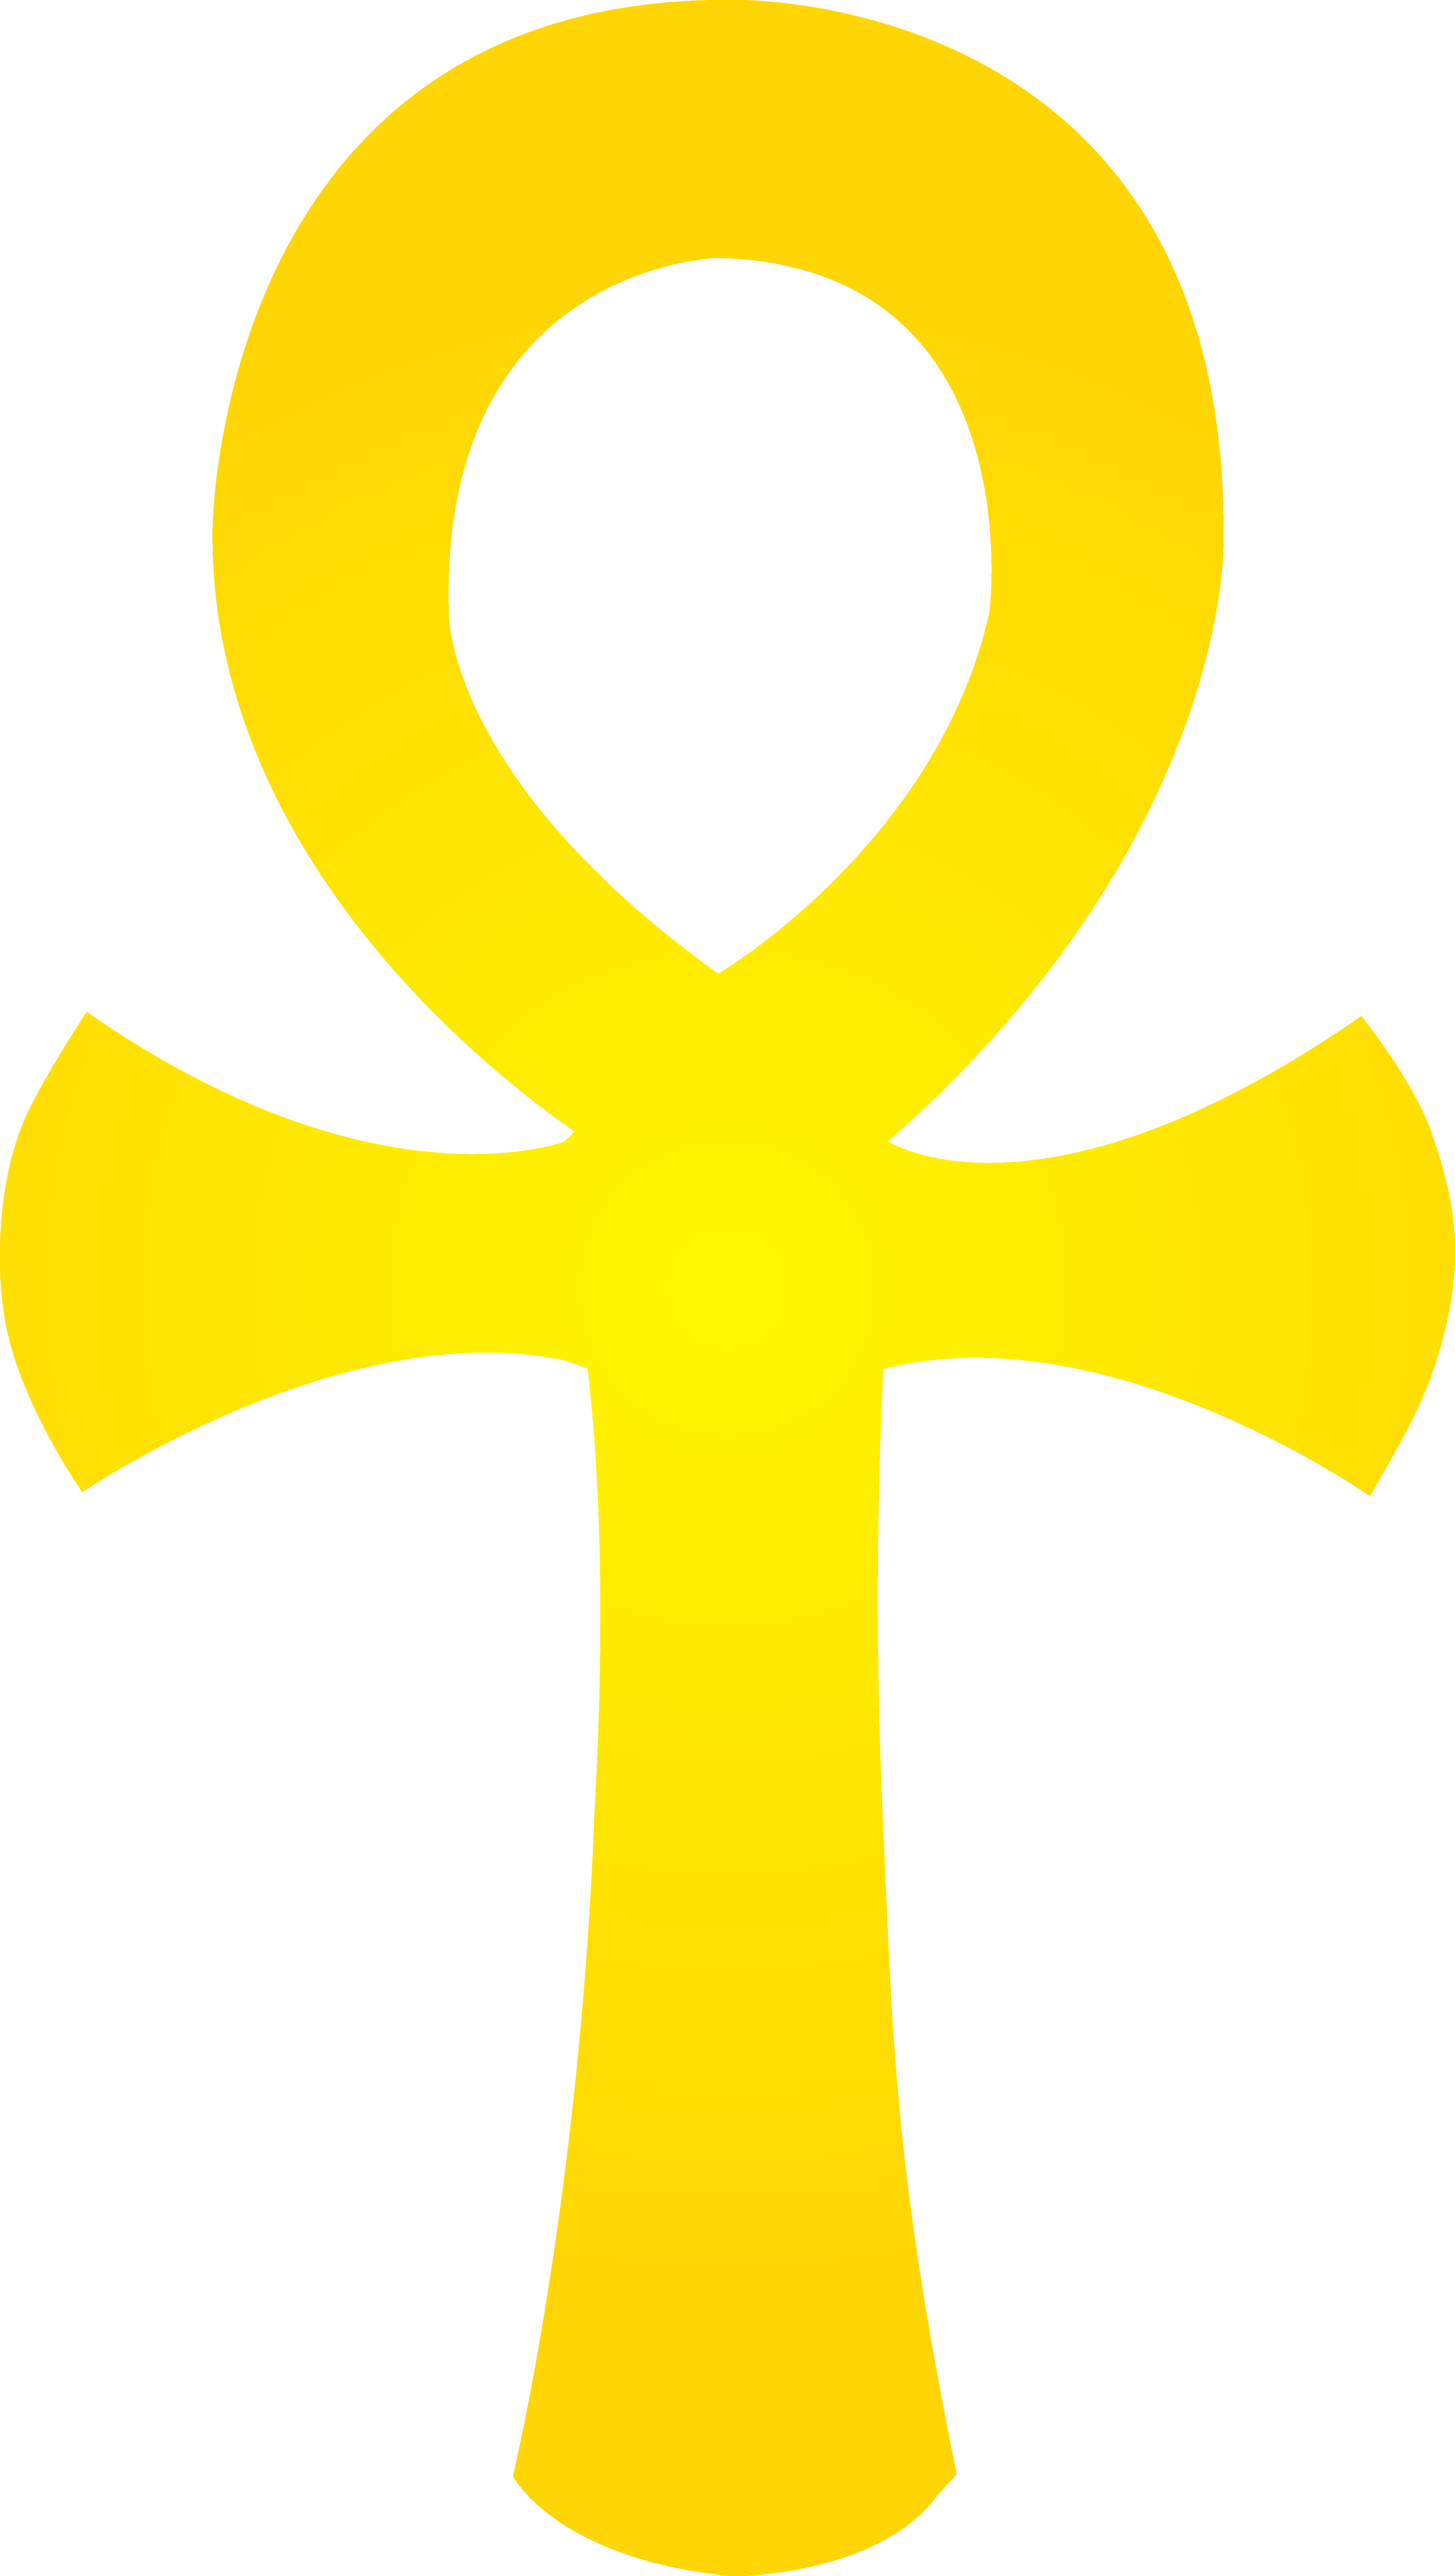 Egyptian ankh png. Golden symbol free clip